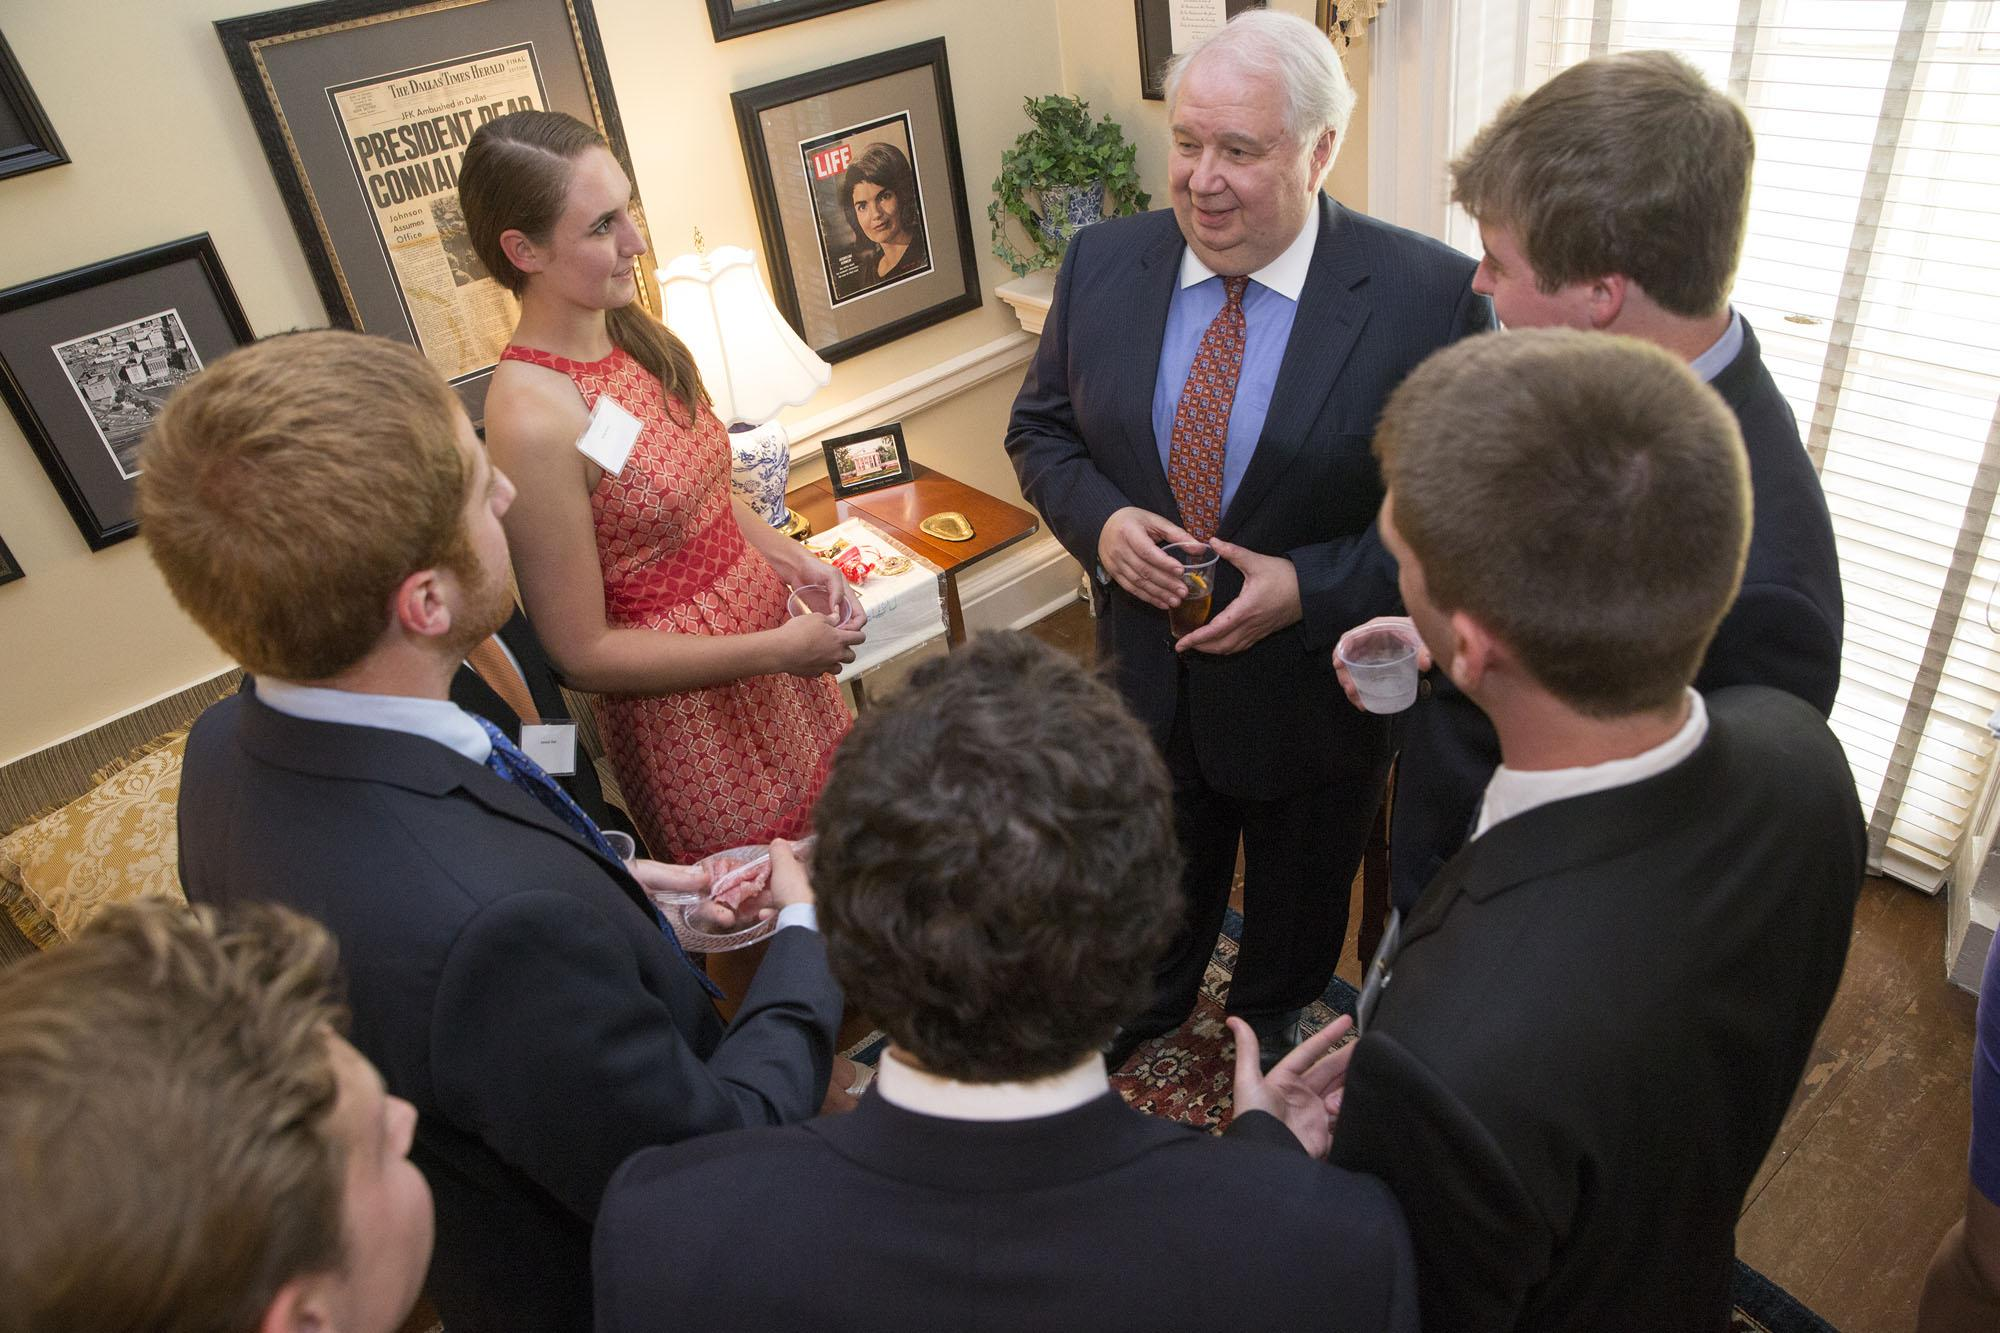 Russian Ambassador Sergey Kislyak met with several political science students at a reception in Pavilion IV before his presentation.  (Photo: Dan Addison)